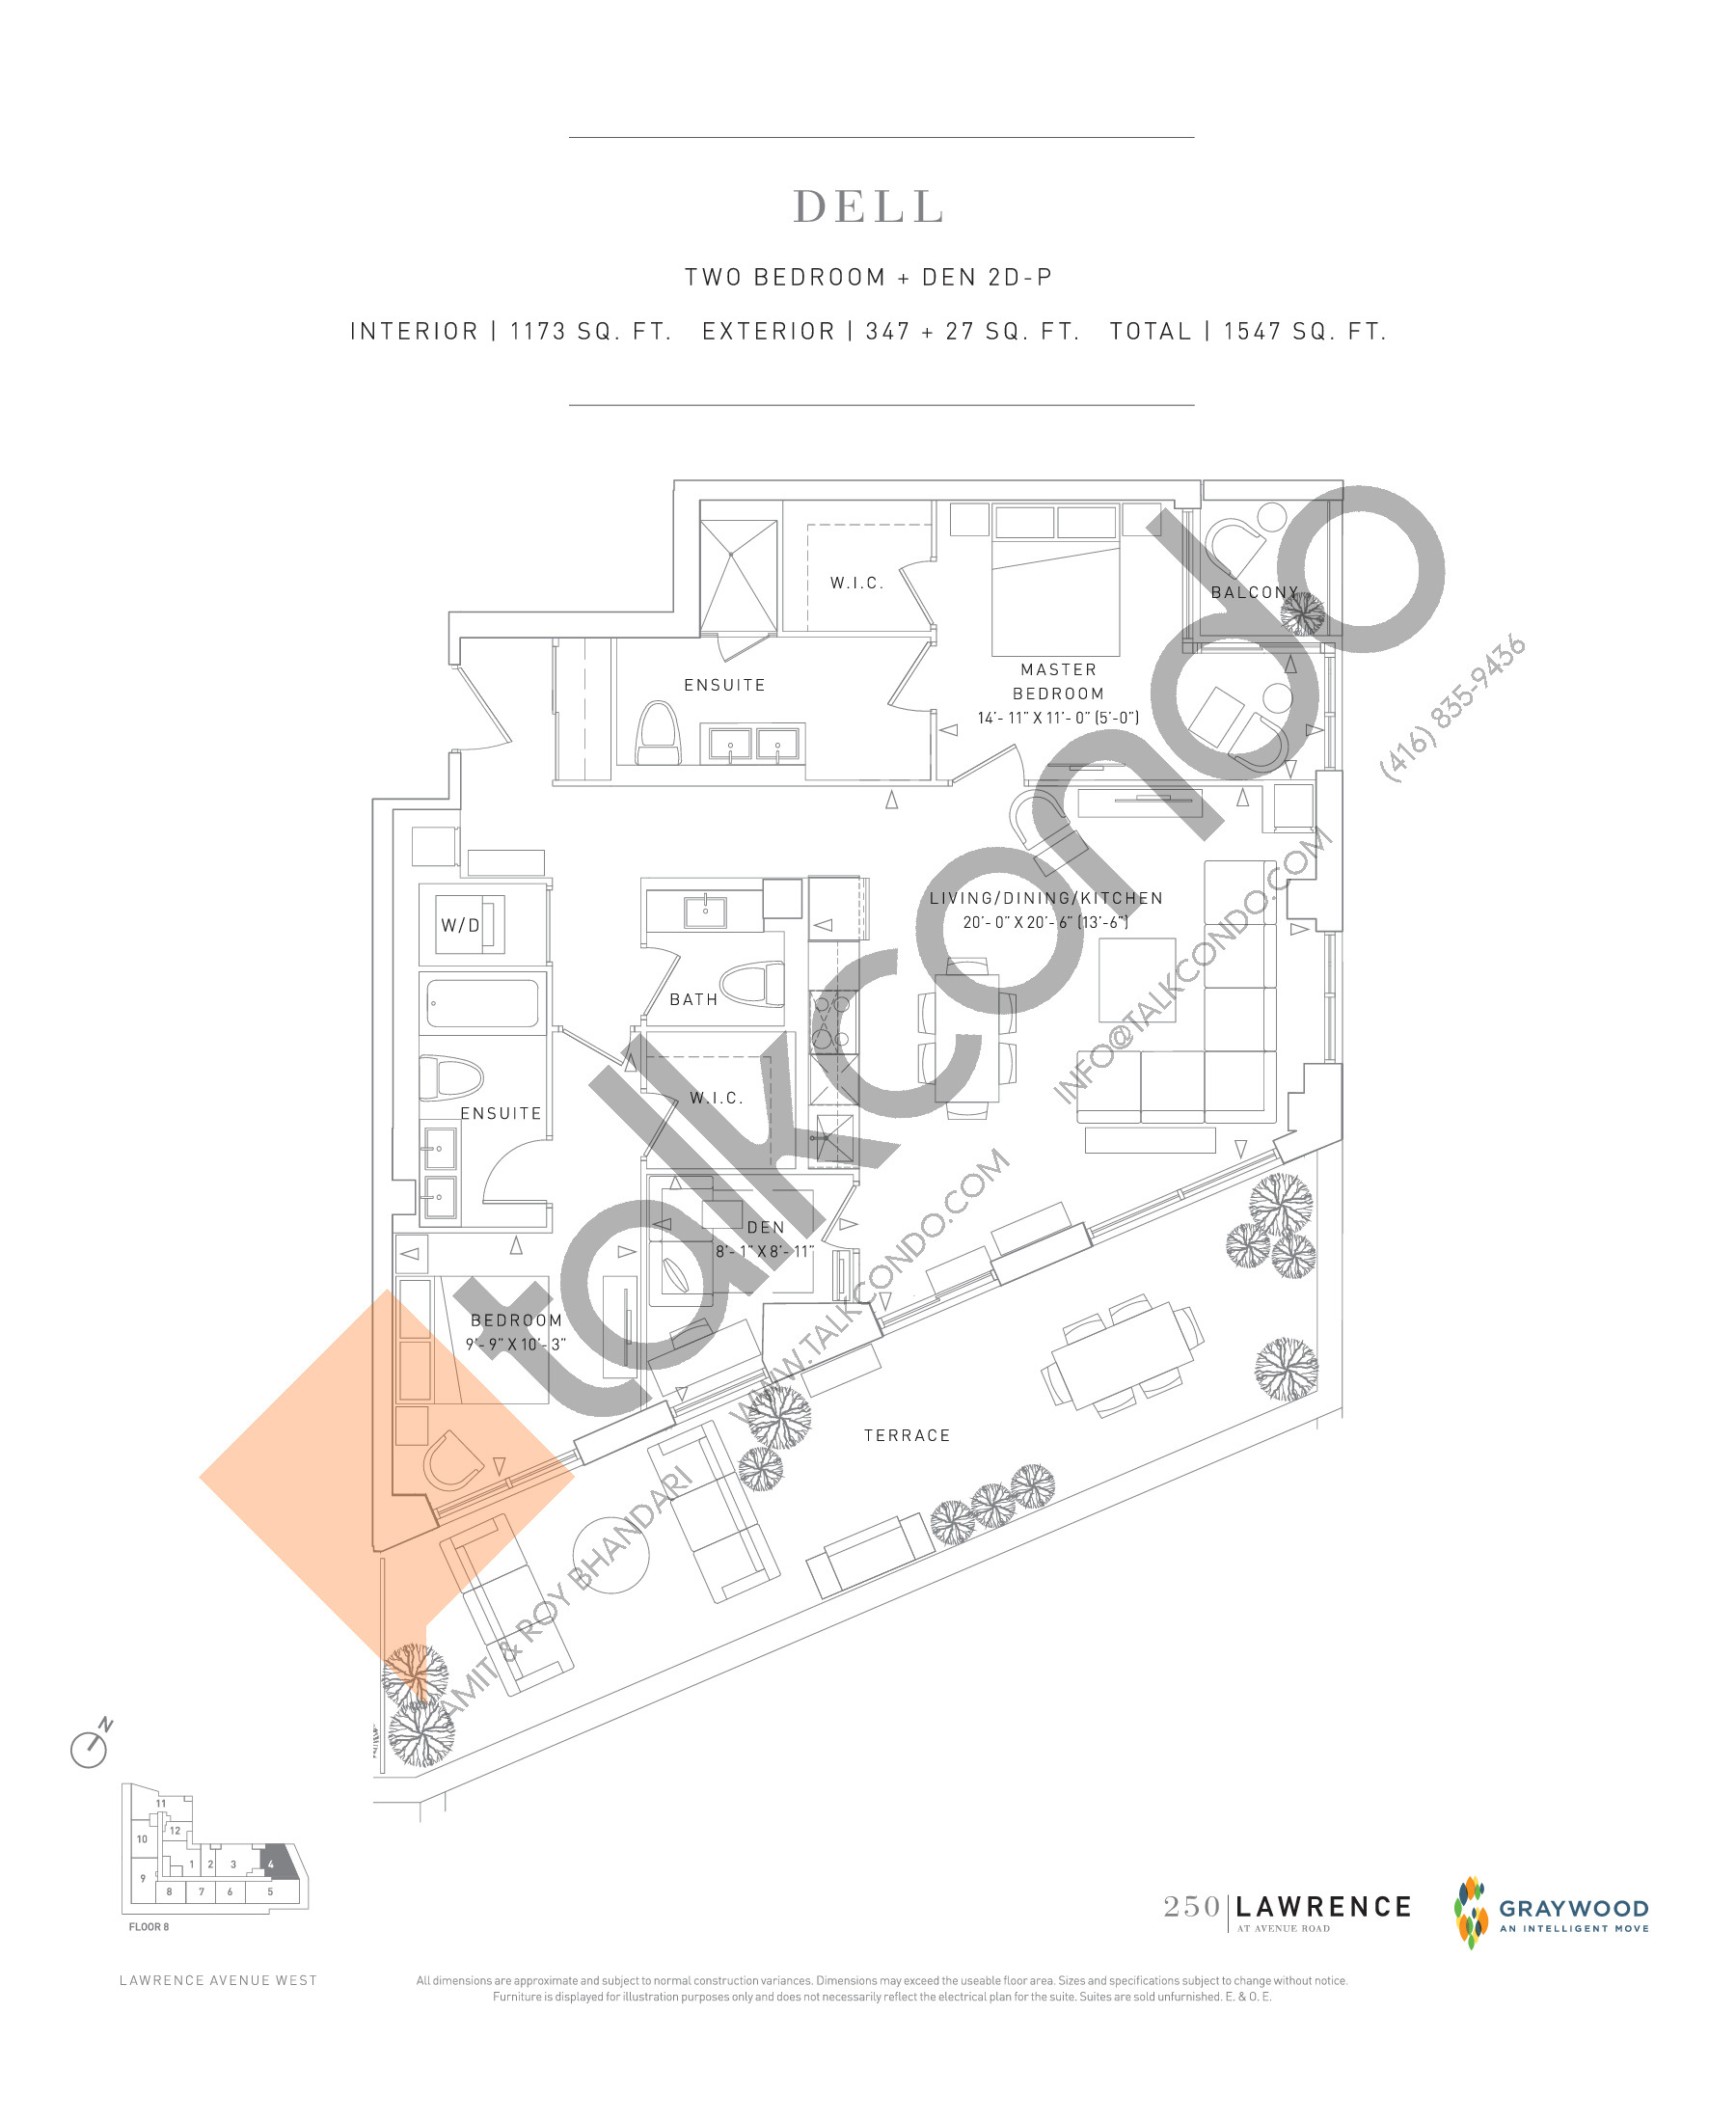 Dell Floor Plan at 250 Lawrence Avenue West Condos - 1173 sq.ft